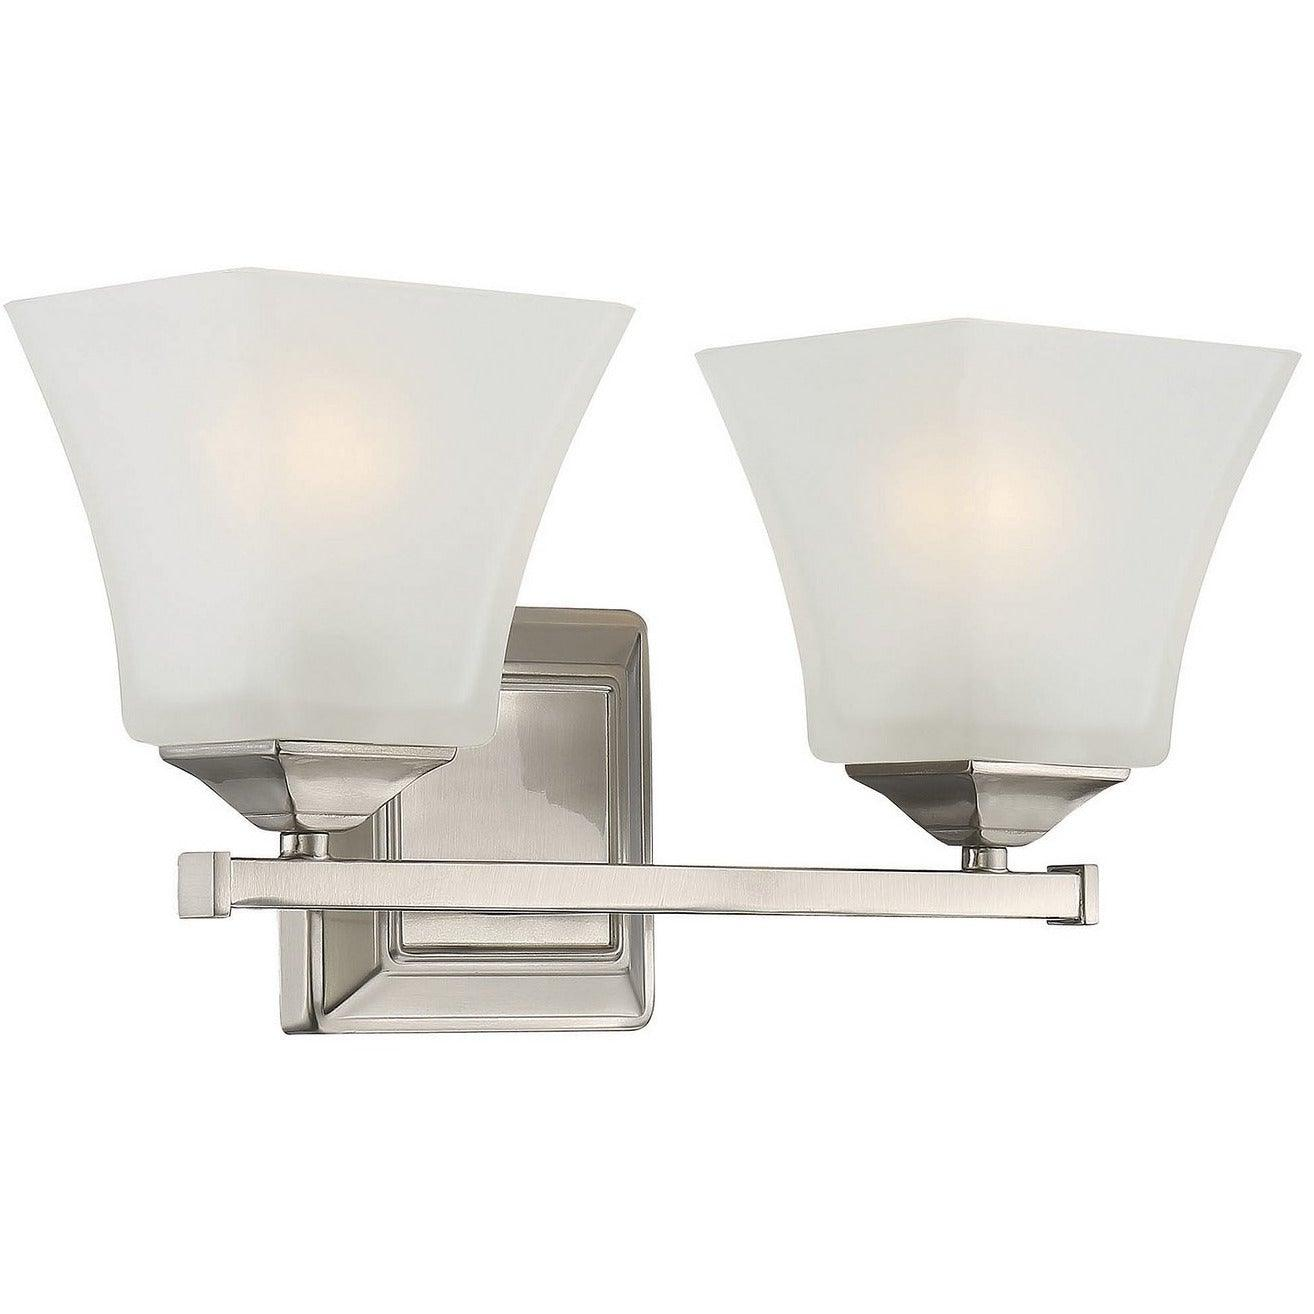 Savoy House - 8-2098-2-SN - Two Light Bath Bar - Castel - Satin Nickel